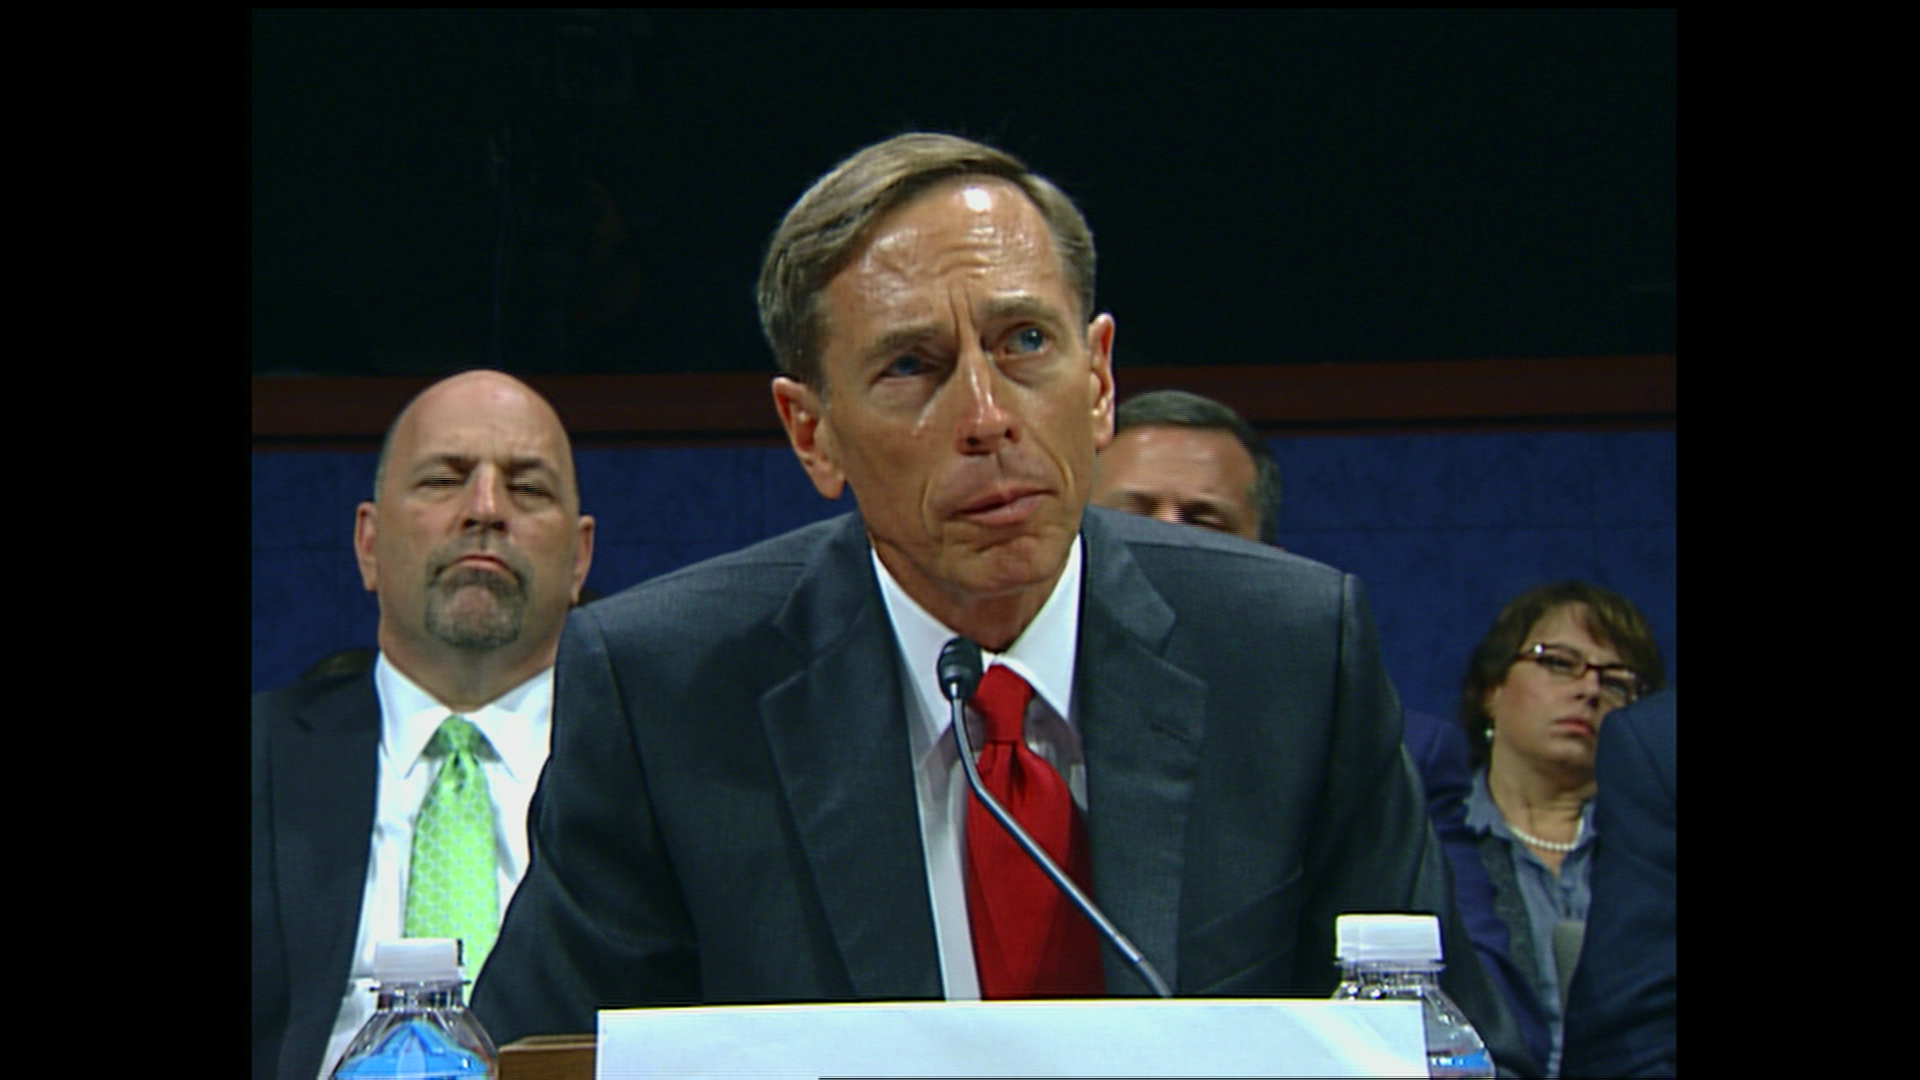 CIA Director Petraeus defends change in war analysis